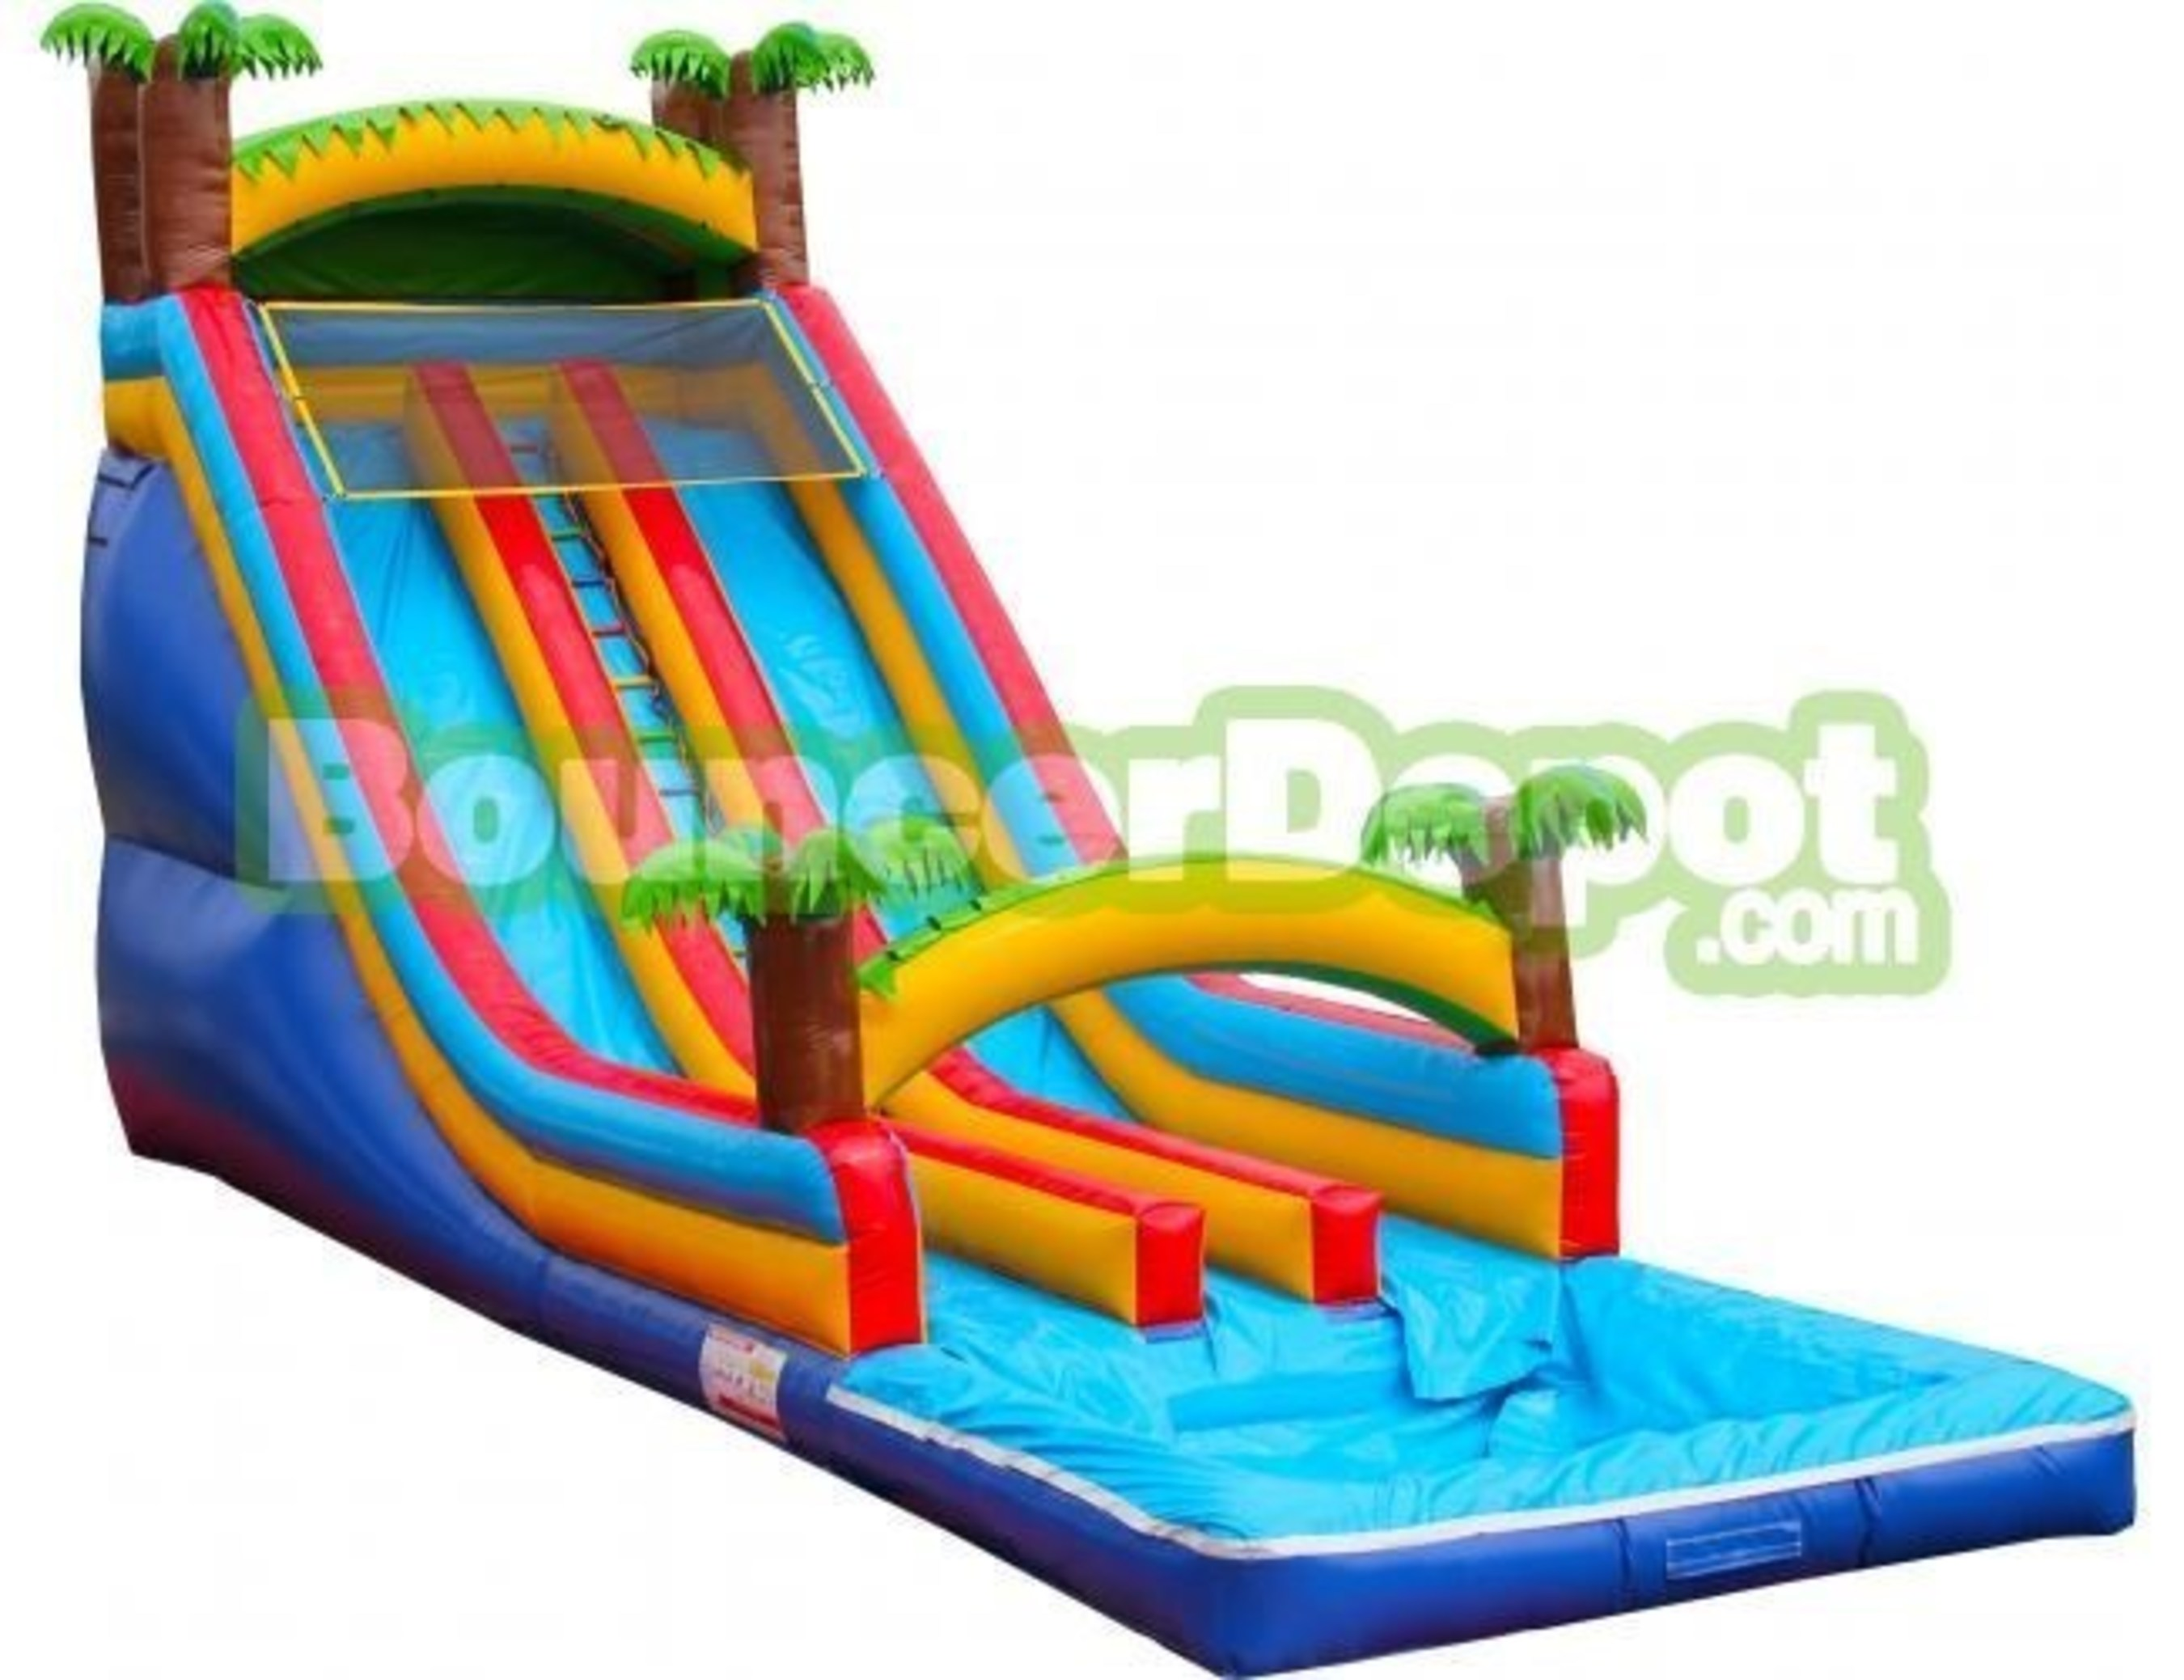 Bouncer Depot Announces New Inflatable Slide and Bounce House Models for 2016